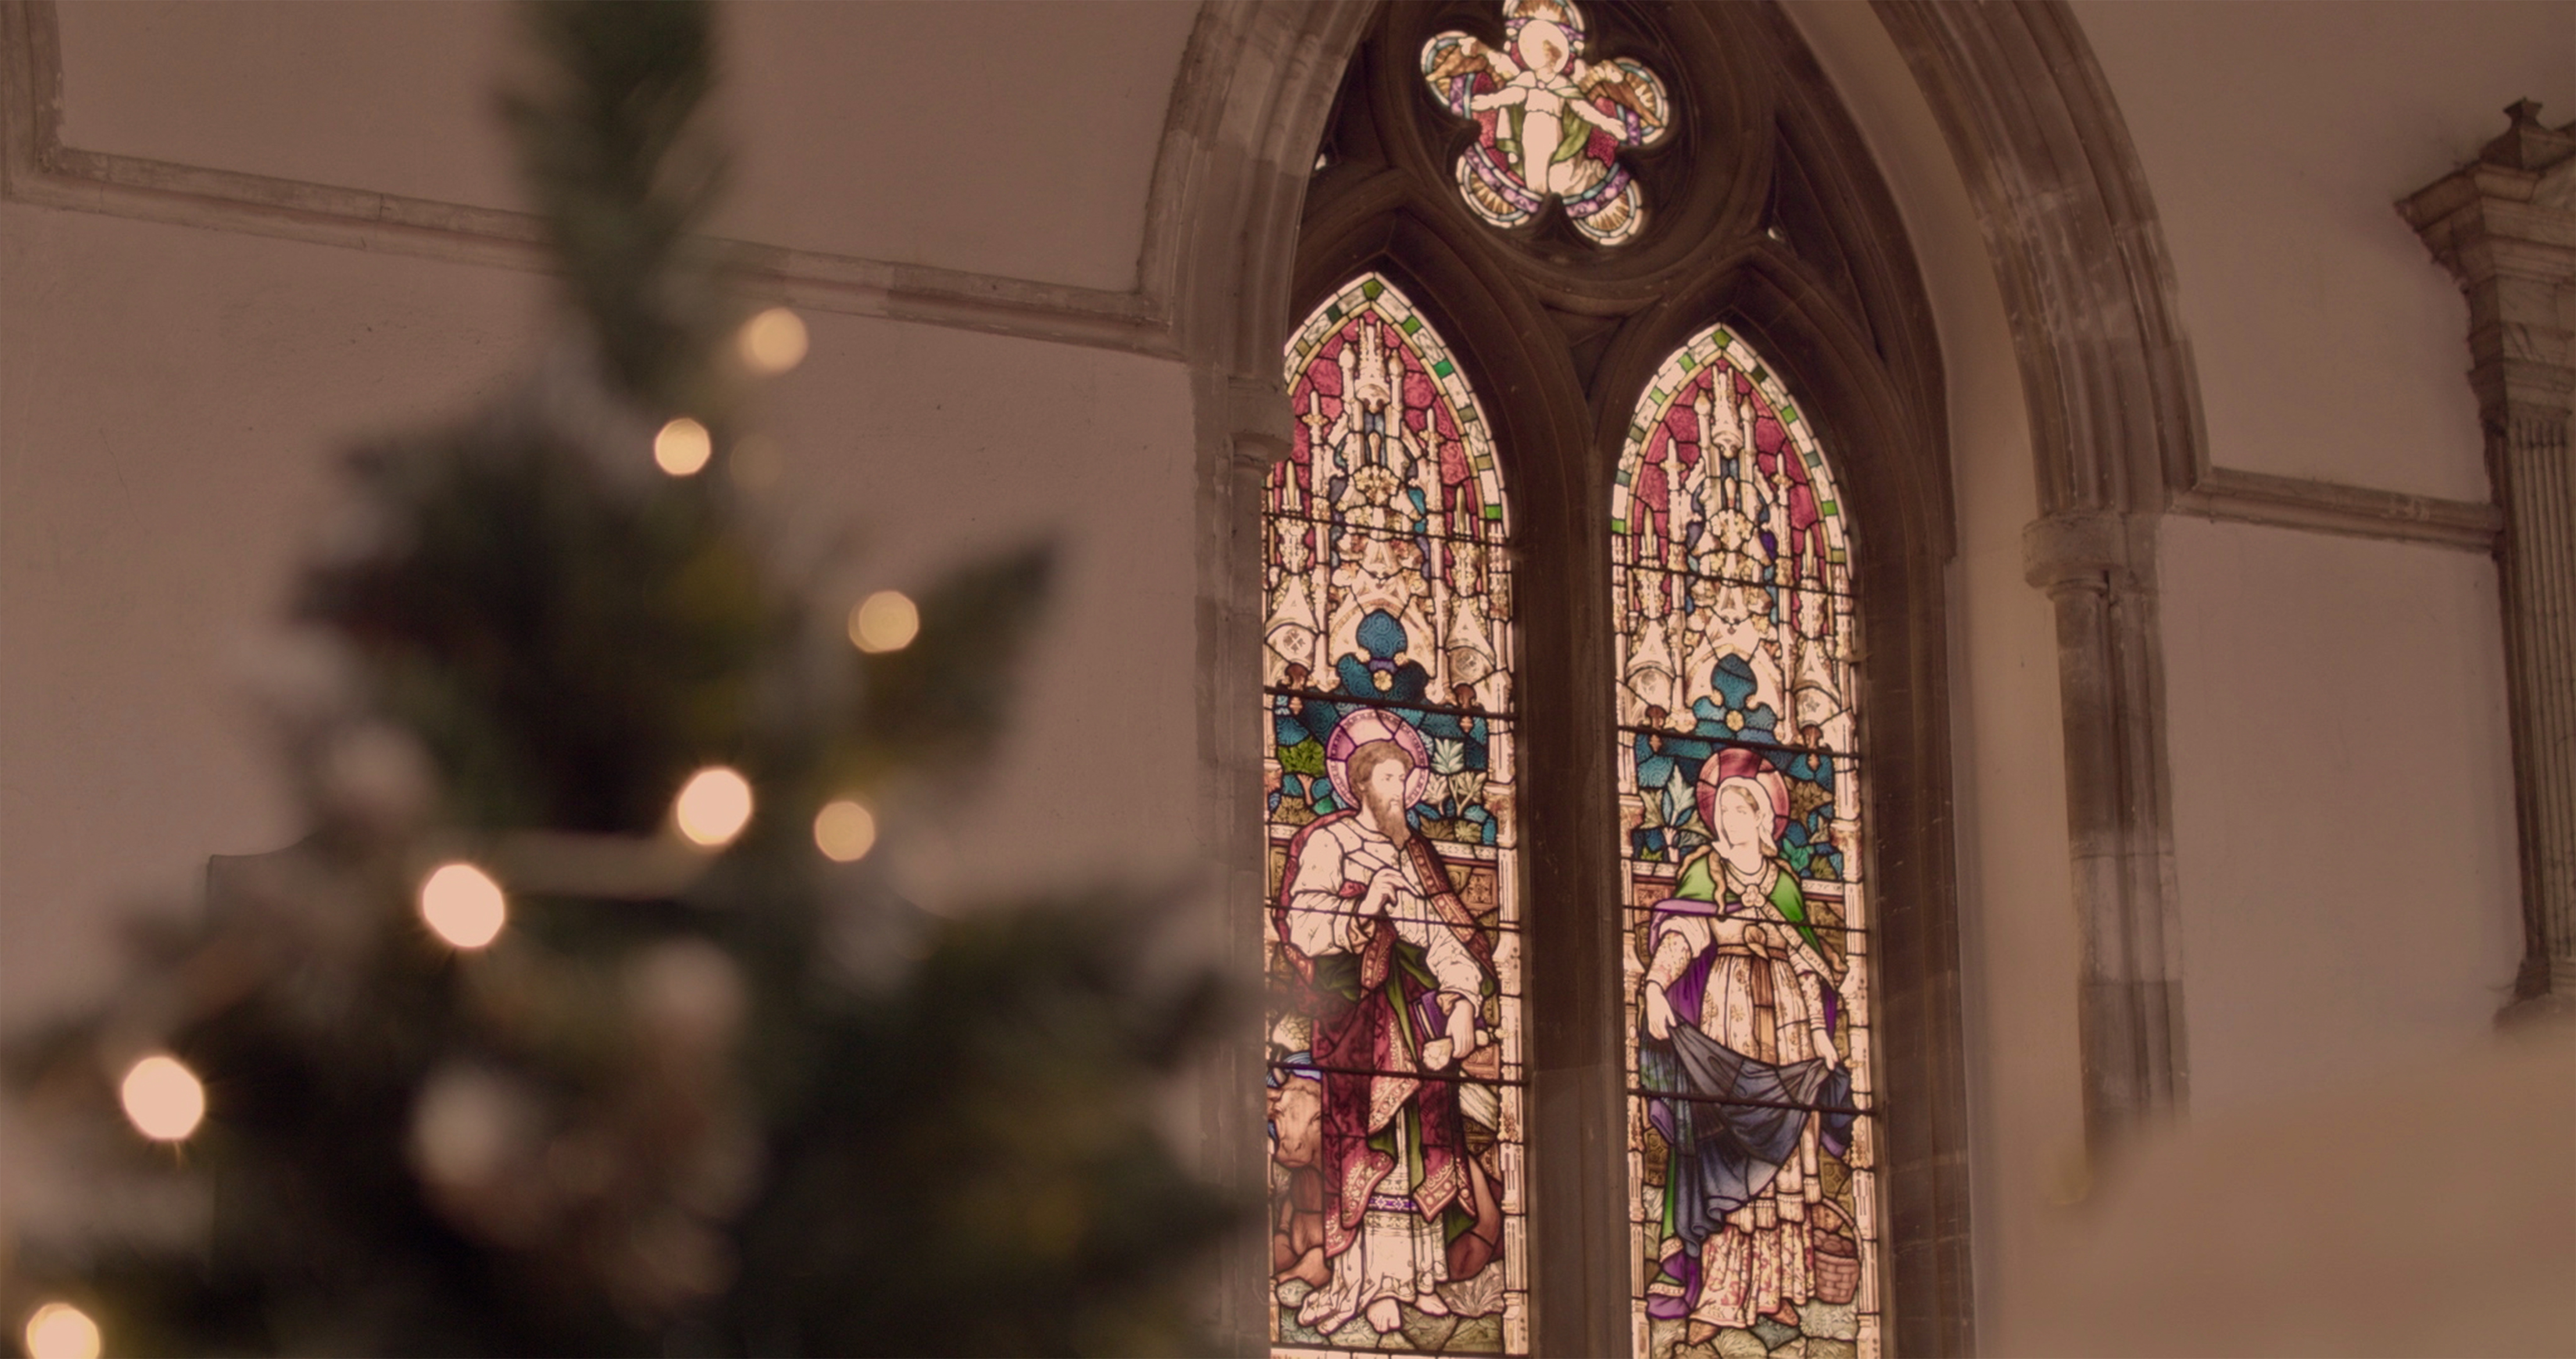 Stained Glass window with a Christmas tree in the foreground